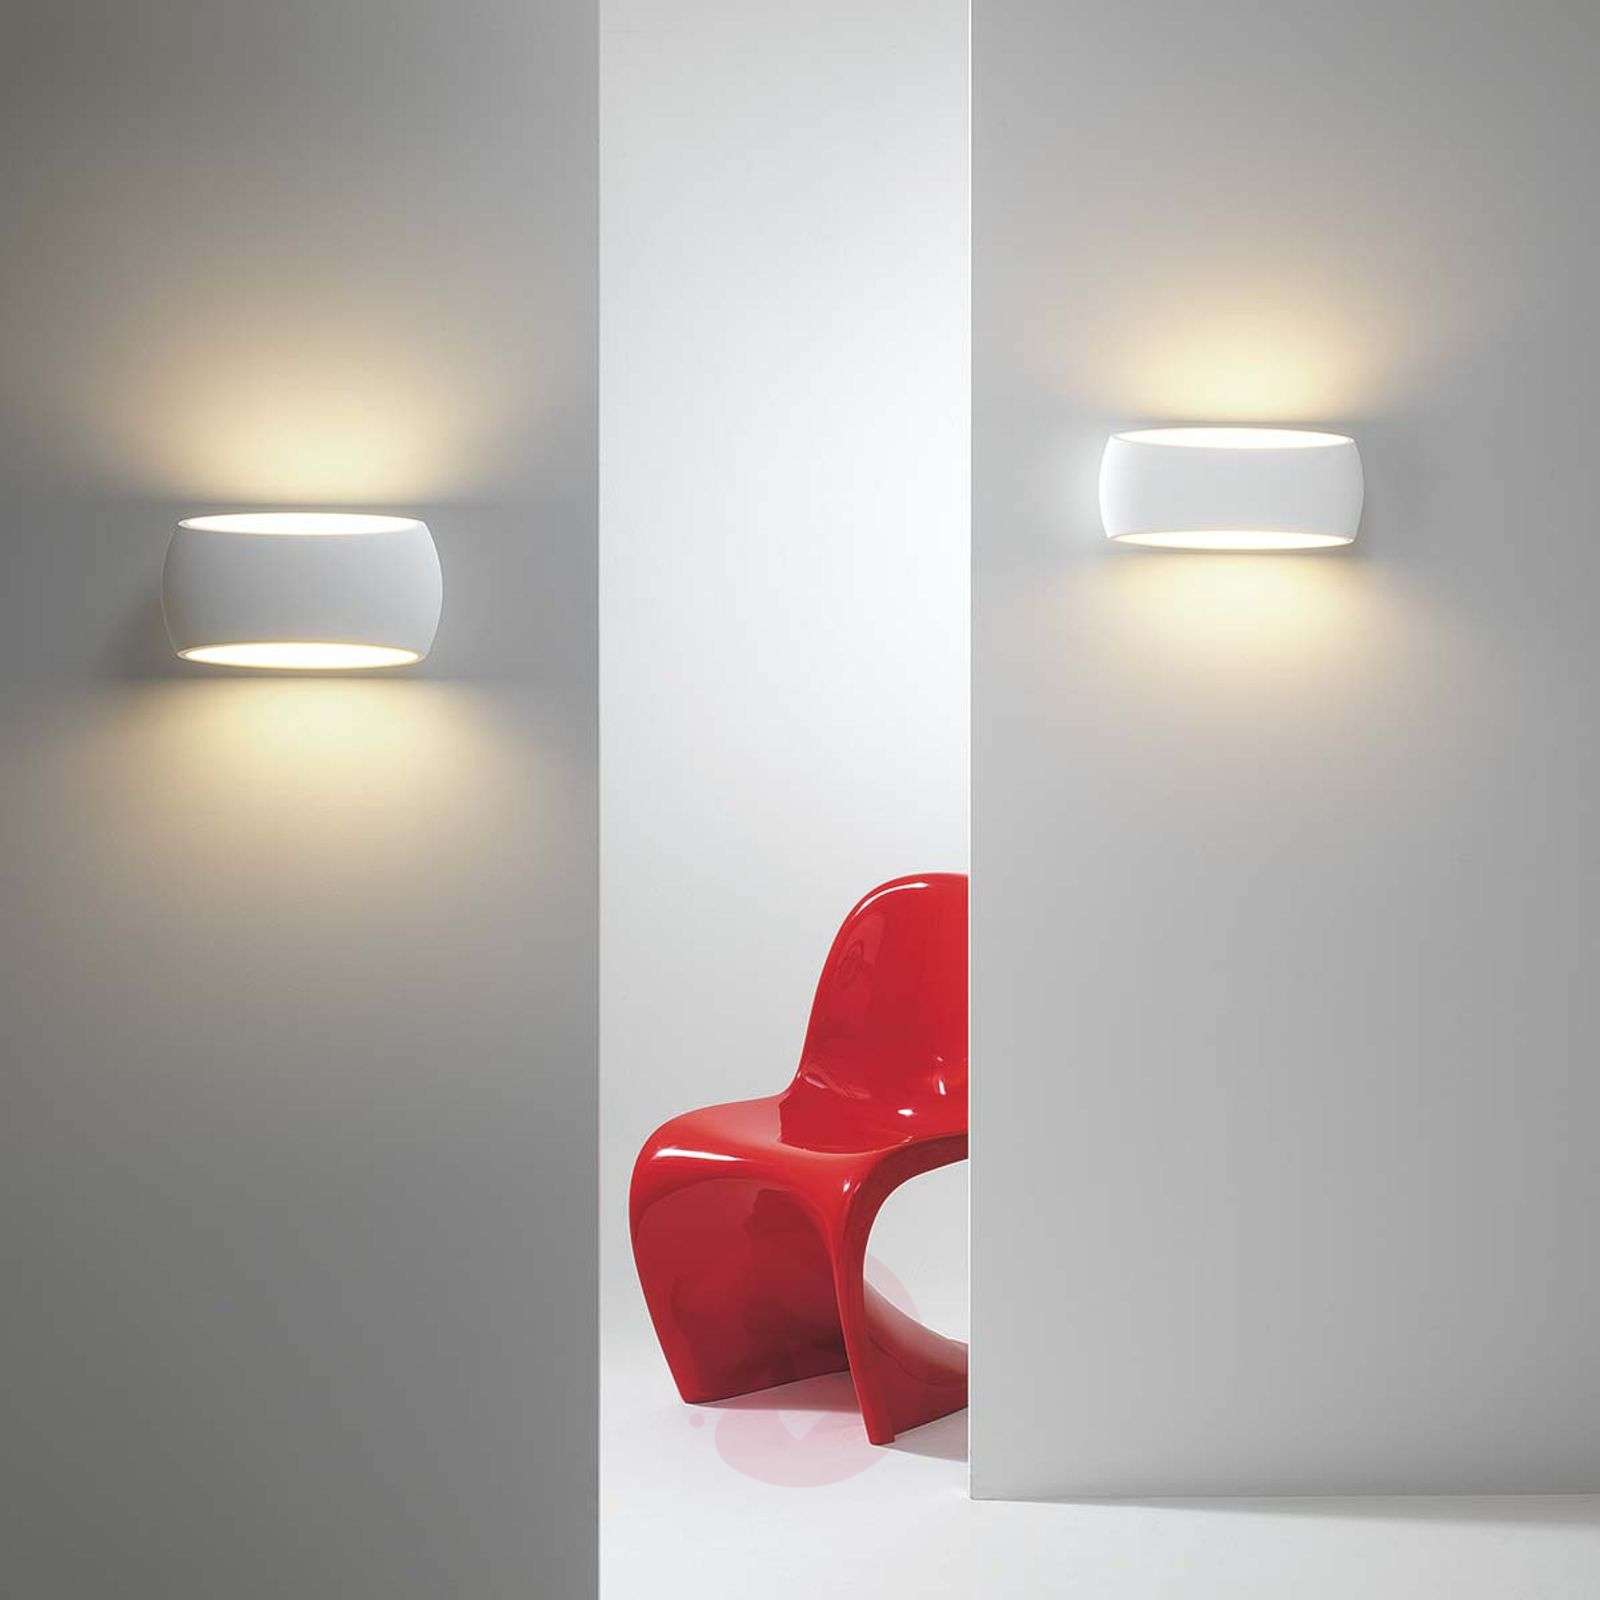 Paintable plaster wall light Aria-1020596-03